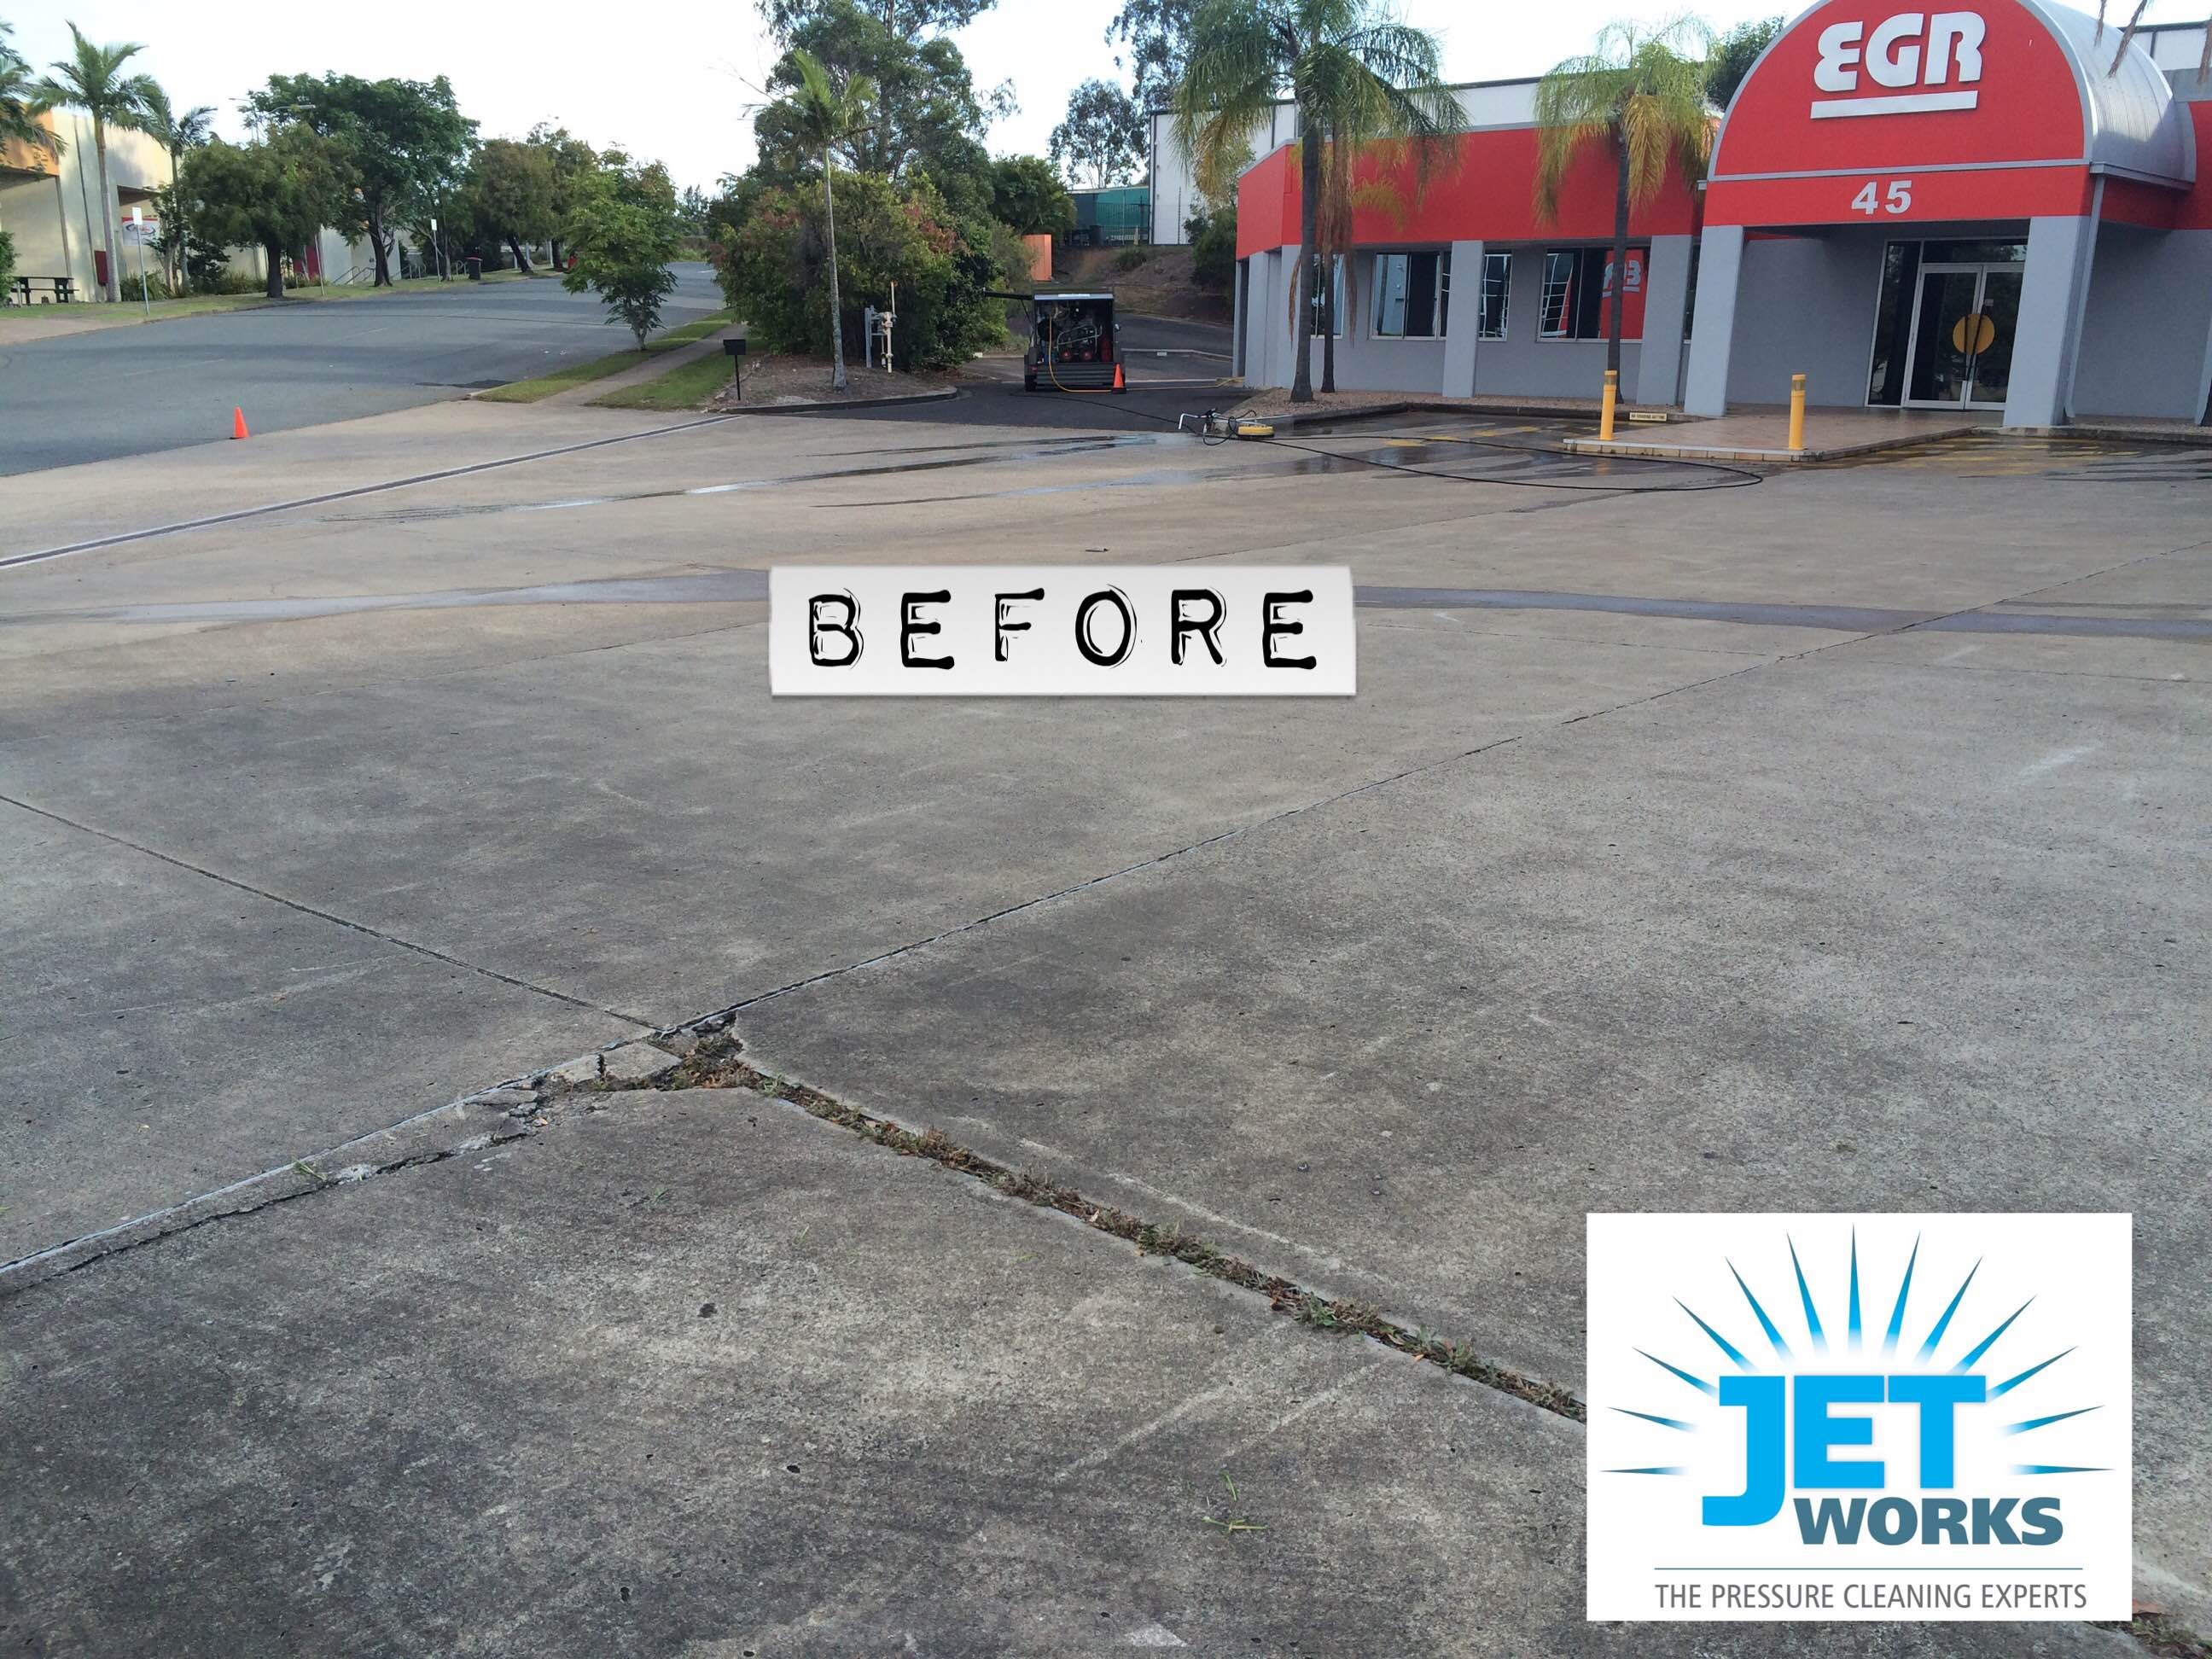 Car park cleaning before pic